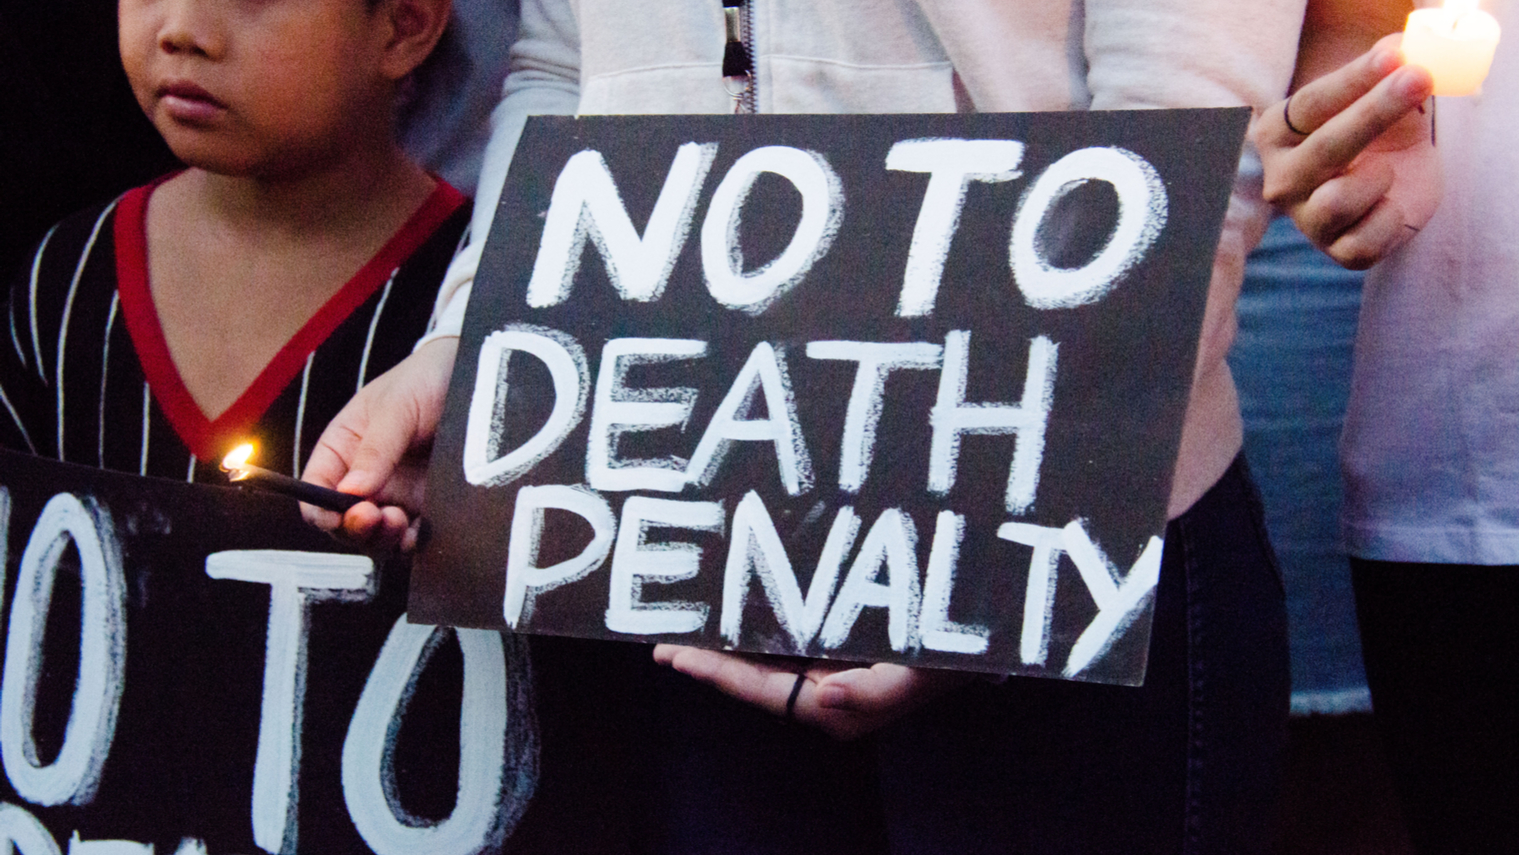 counter arguments for death penalty in the philippines One of the best arguments for the death penalty is that capital punishment is a huge deterrent we have to prevent others from committing heinous crimes.